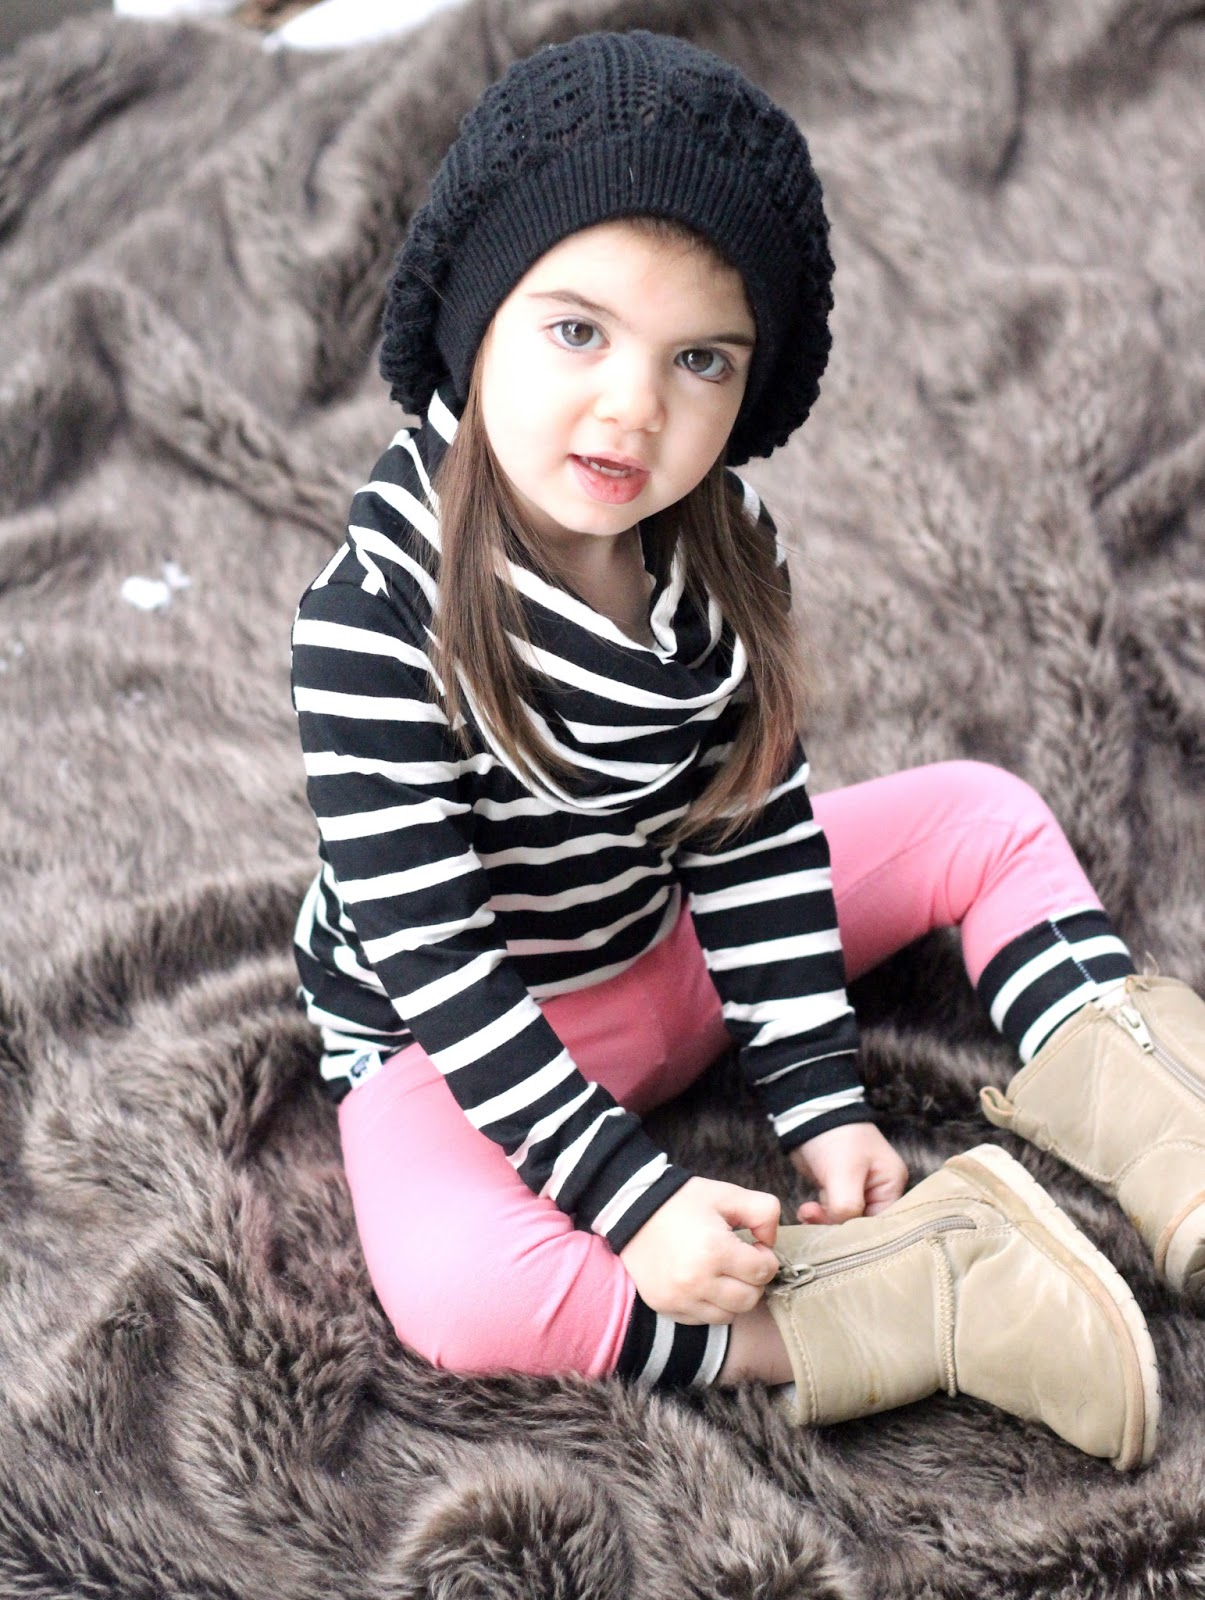 Cute handmade clothing from Cute Little Babes.